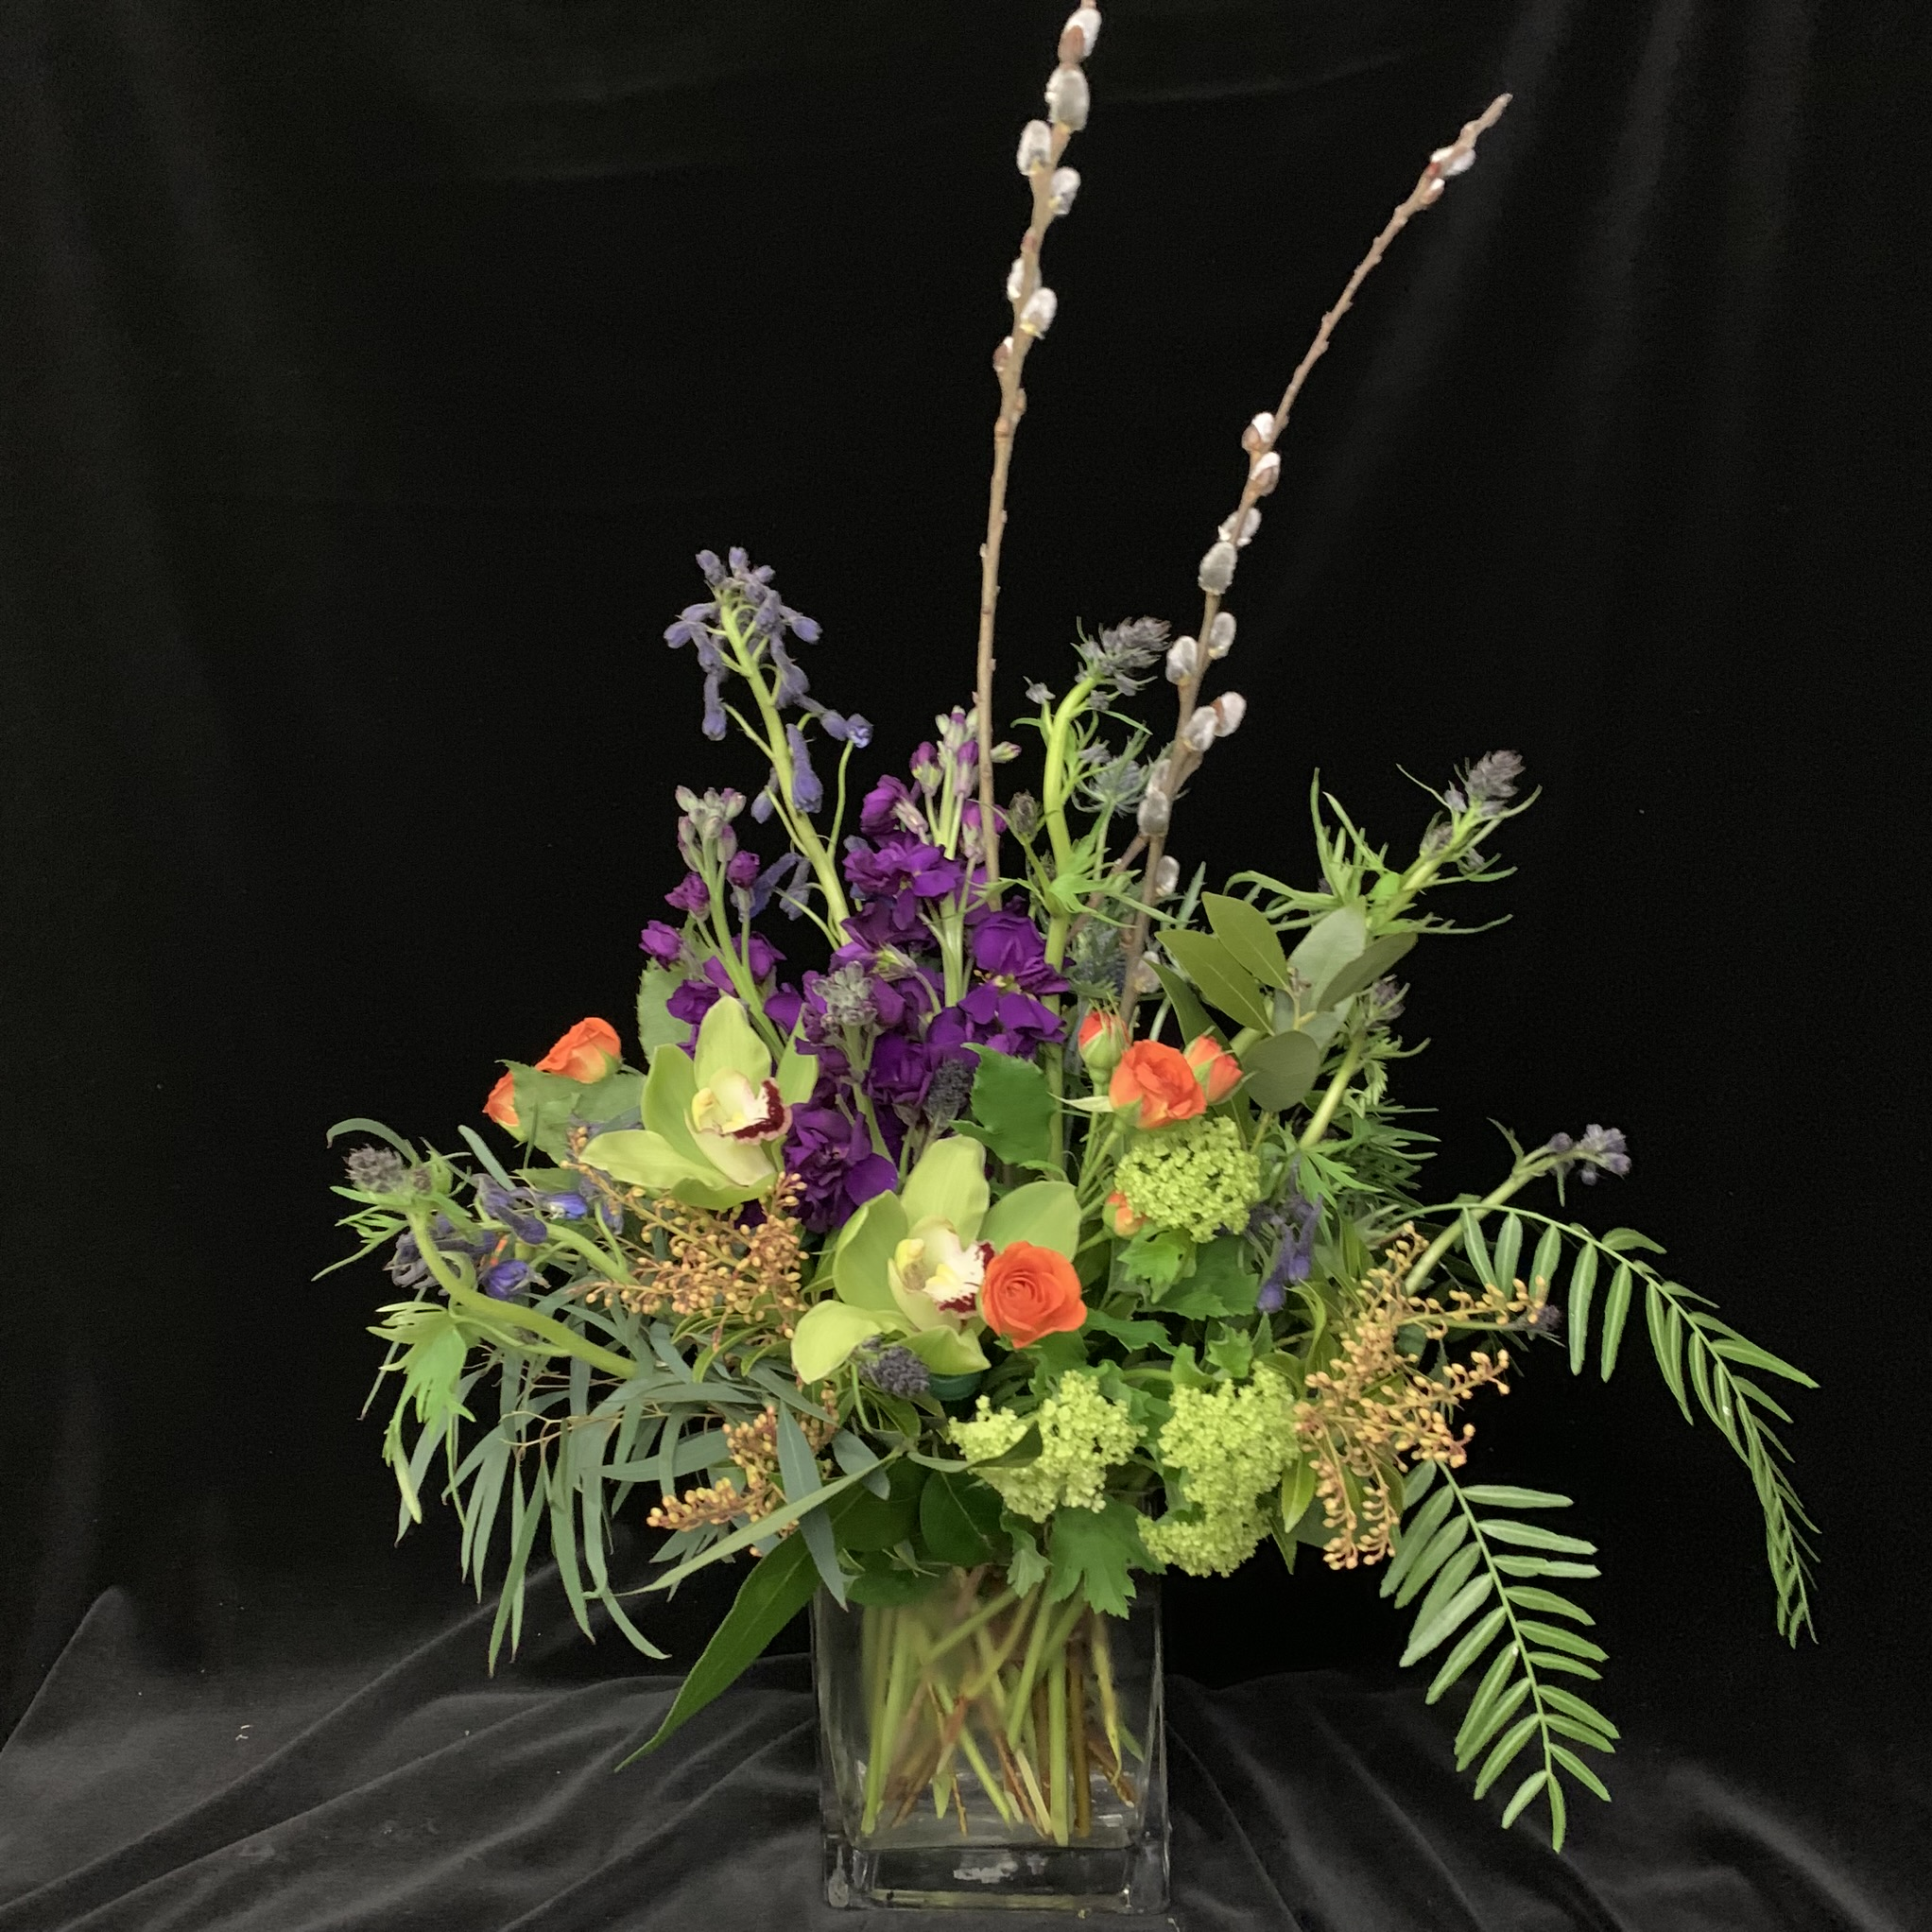 27. Natural overflowing centerpiece in purple, green and orange